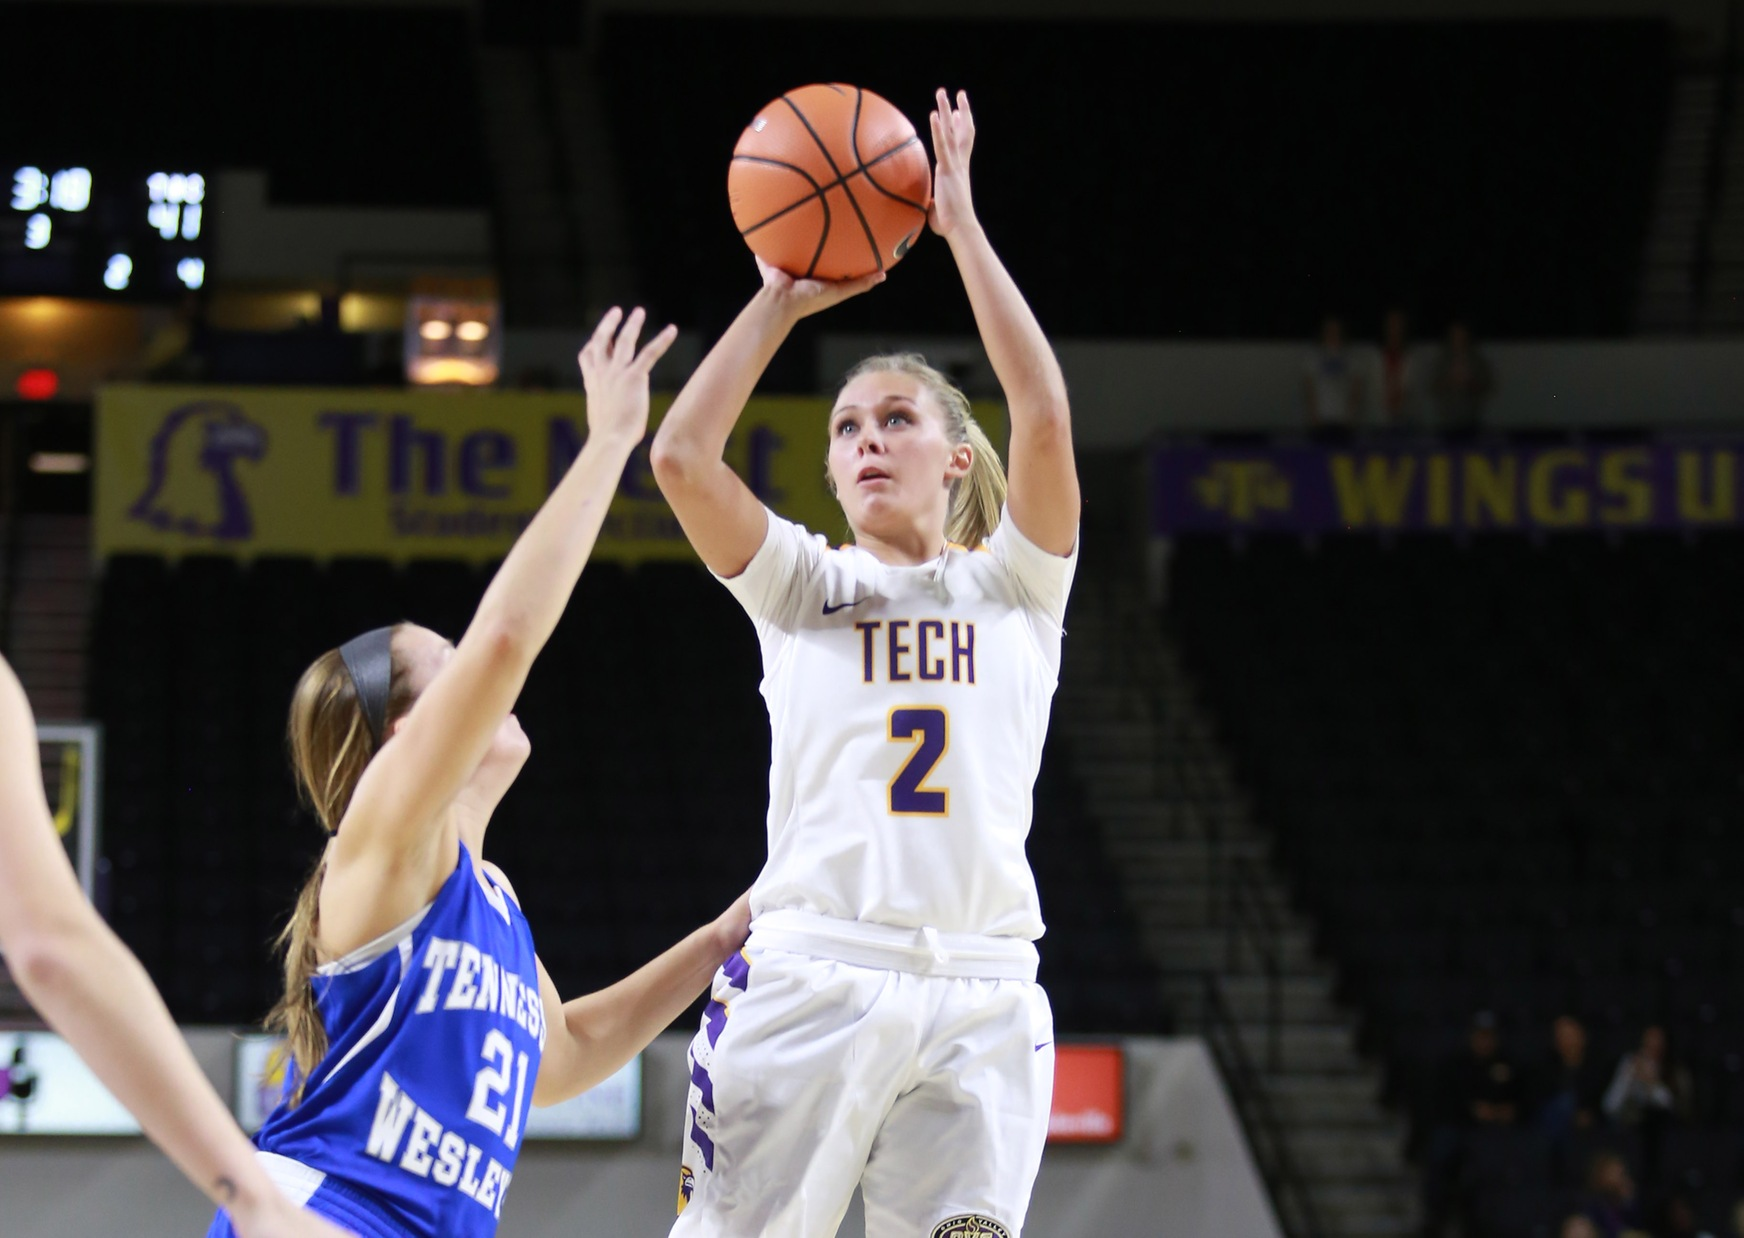 Tech's offensive effort pushes Golden Eagles to season-opening win over Tennessee Wesleyan